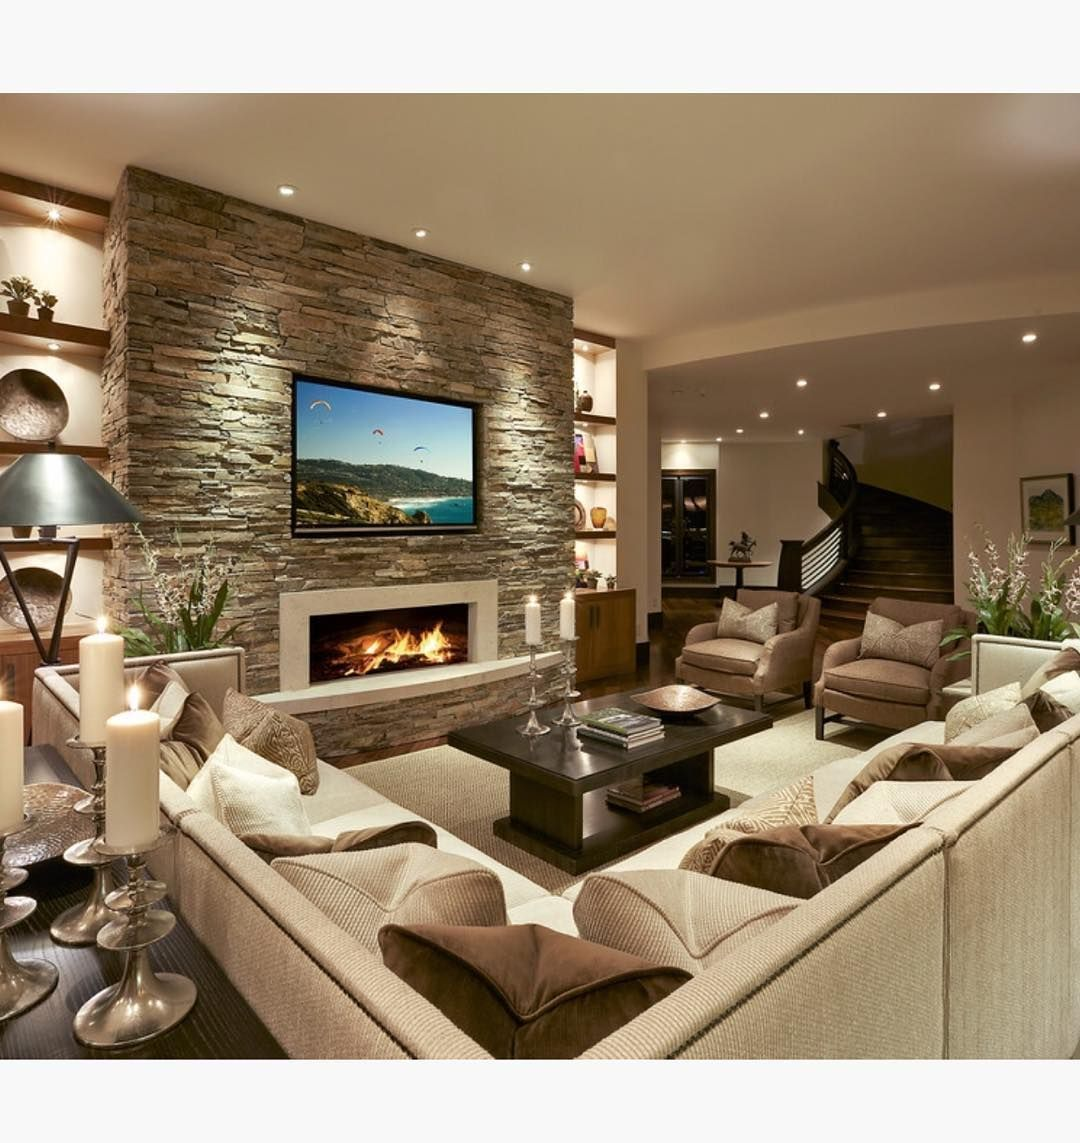 A Finishing Basement Reconstruction To Increase Your Home